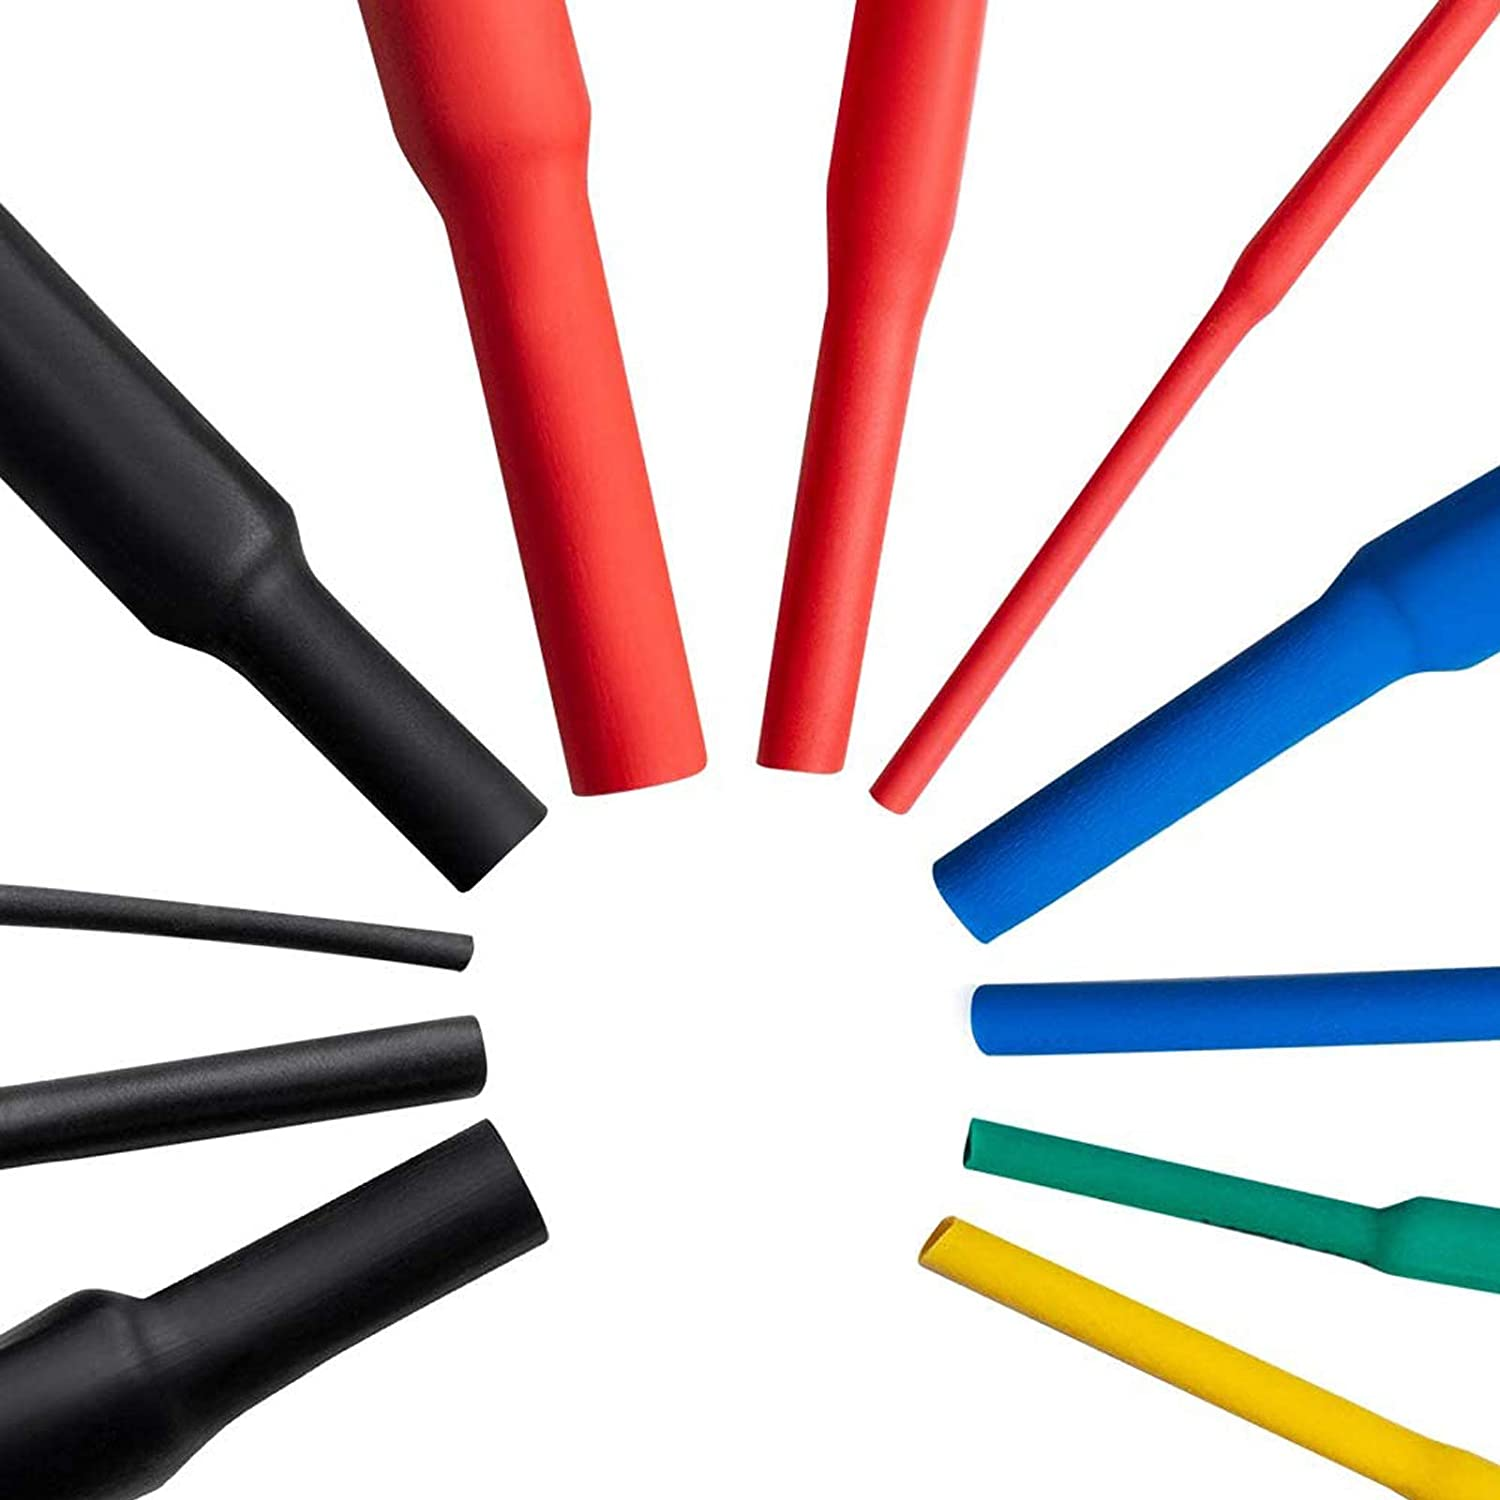 530pcs Lnsulated Heat Shrinkable Tube Heat Shrink Tubes Insulated Wire Cable Sleeving Wrap Shrink Ratio 2 1 Shrink Tube Glue Heat Shrink Color Environmental Protection Flame Retardant Shrink Tube